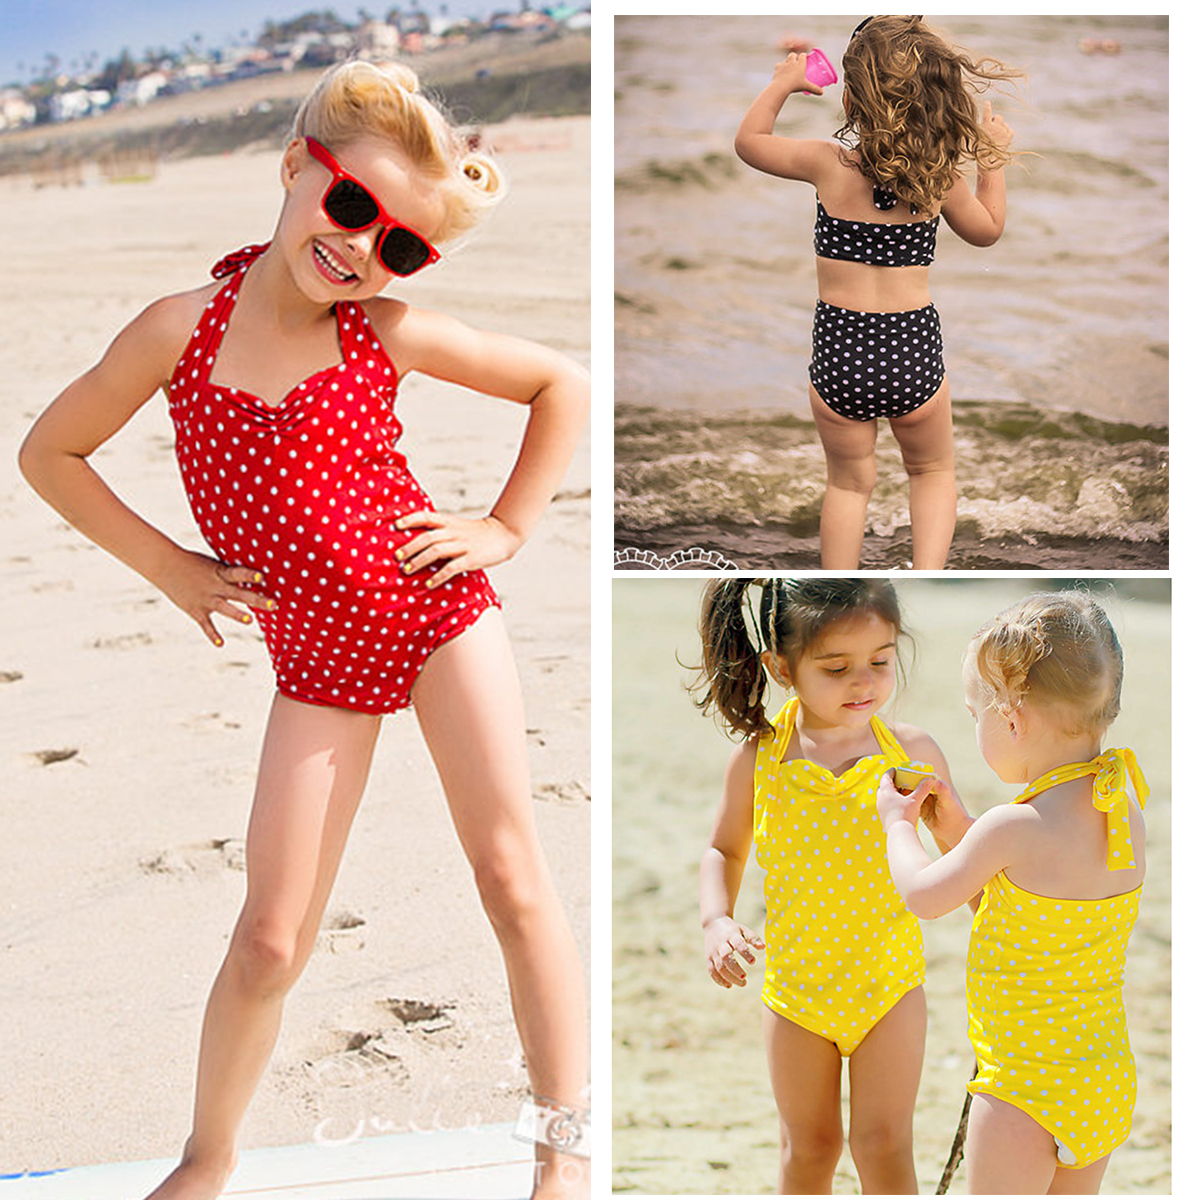 2-12 Years Children Girls Swimsuit Two Pieces Bikini Set Polka-dot Swimwear Bathing Suits 2019 New Summer Bathing Suit